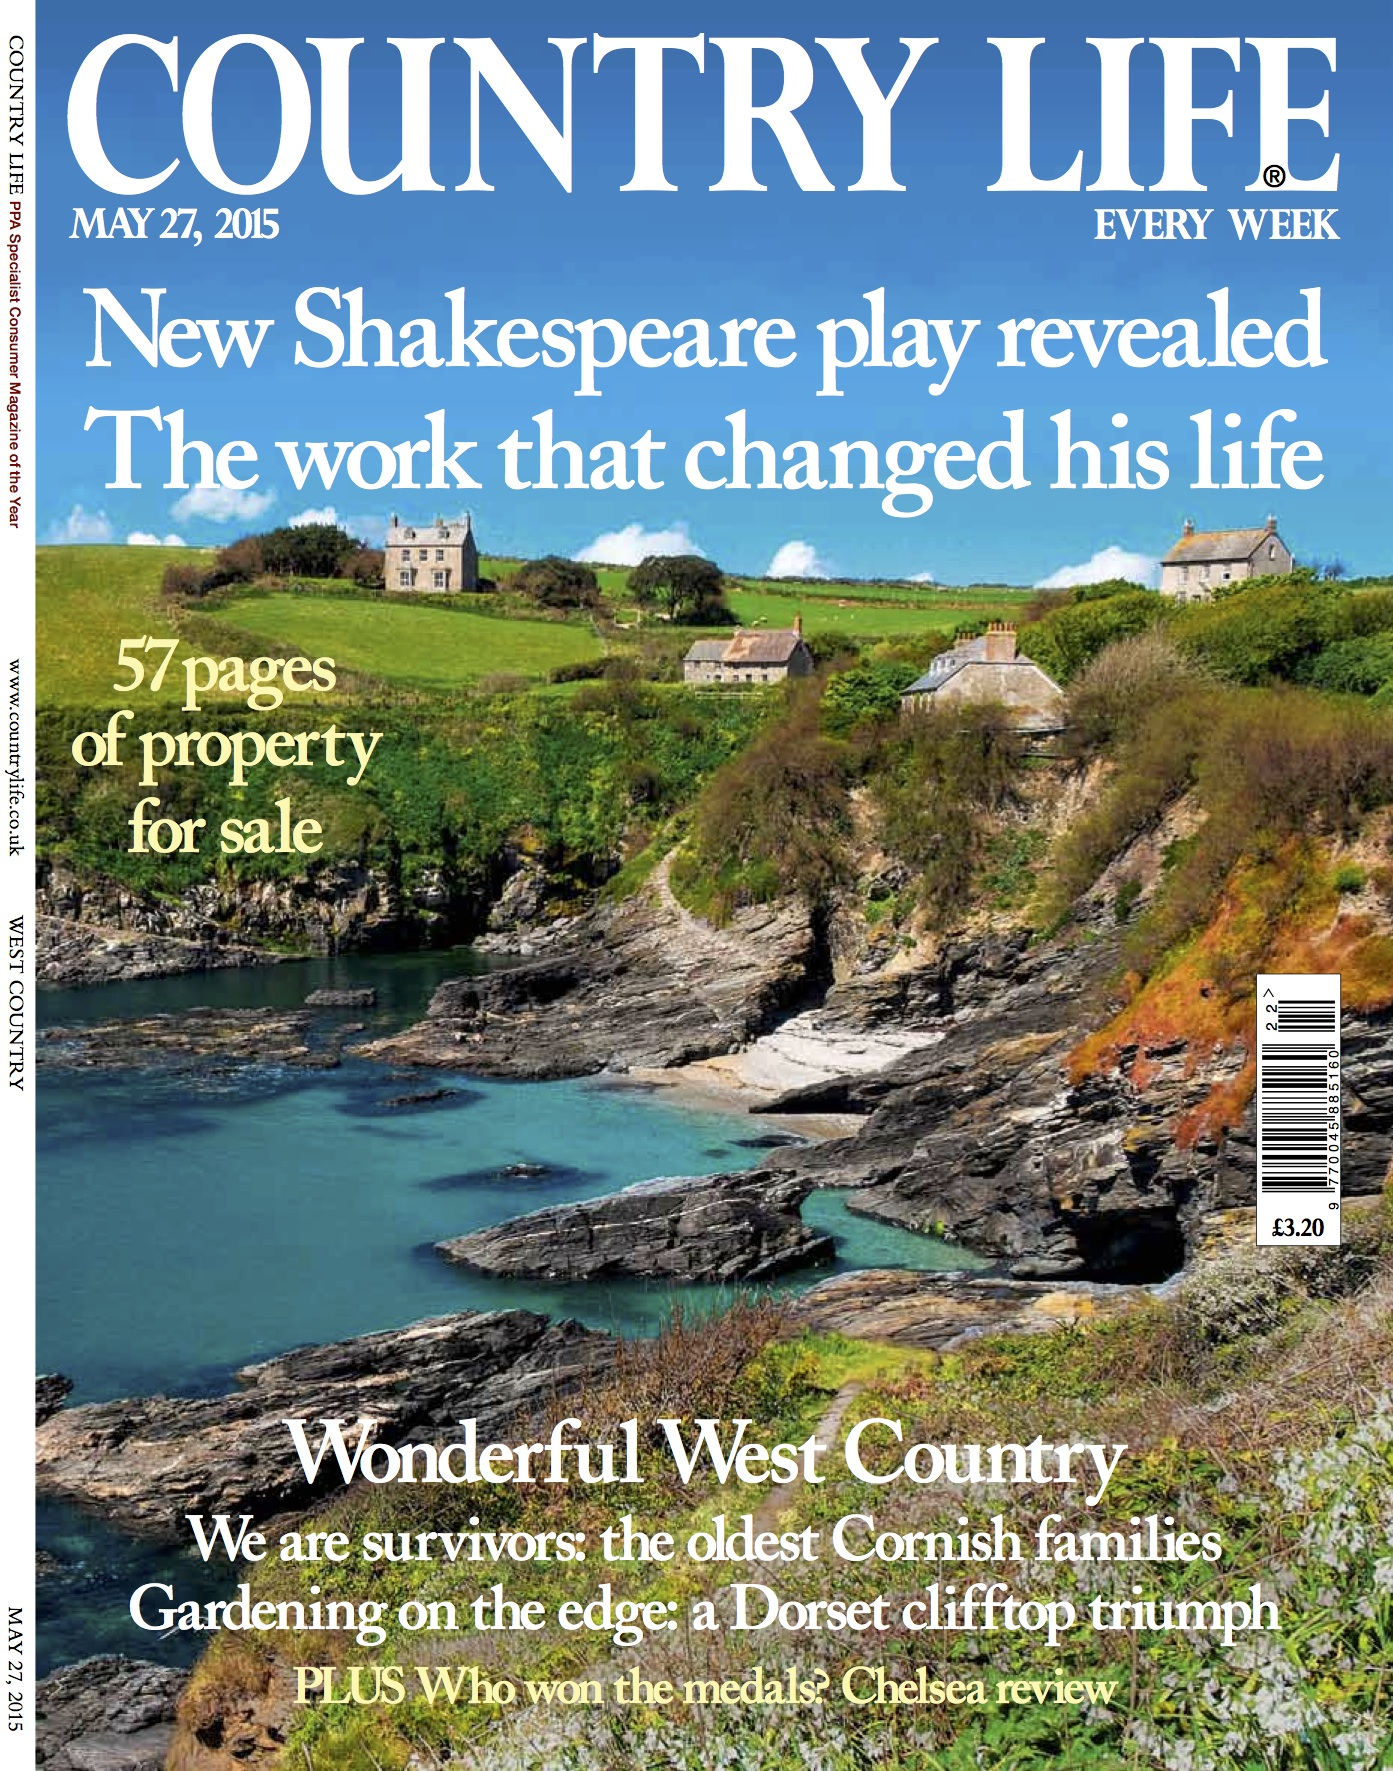 Country Life MAY 27, 2015 COVER.jpg